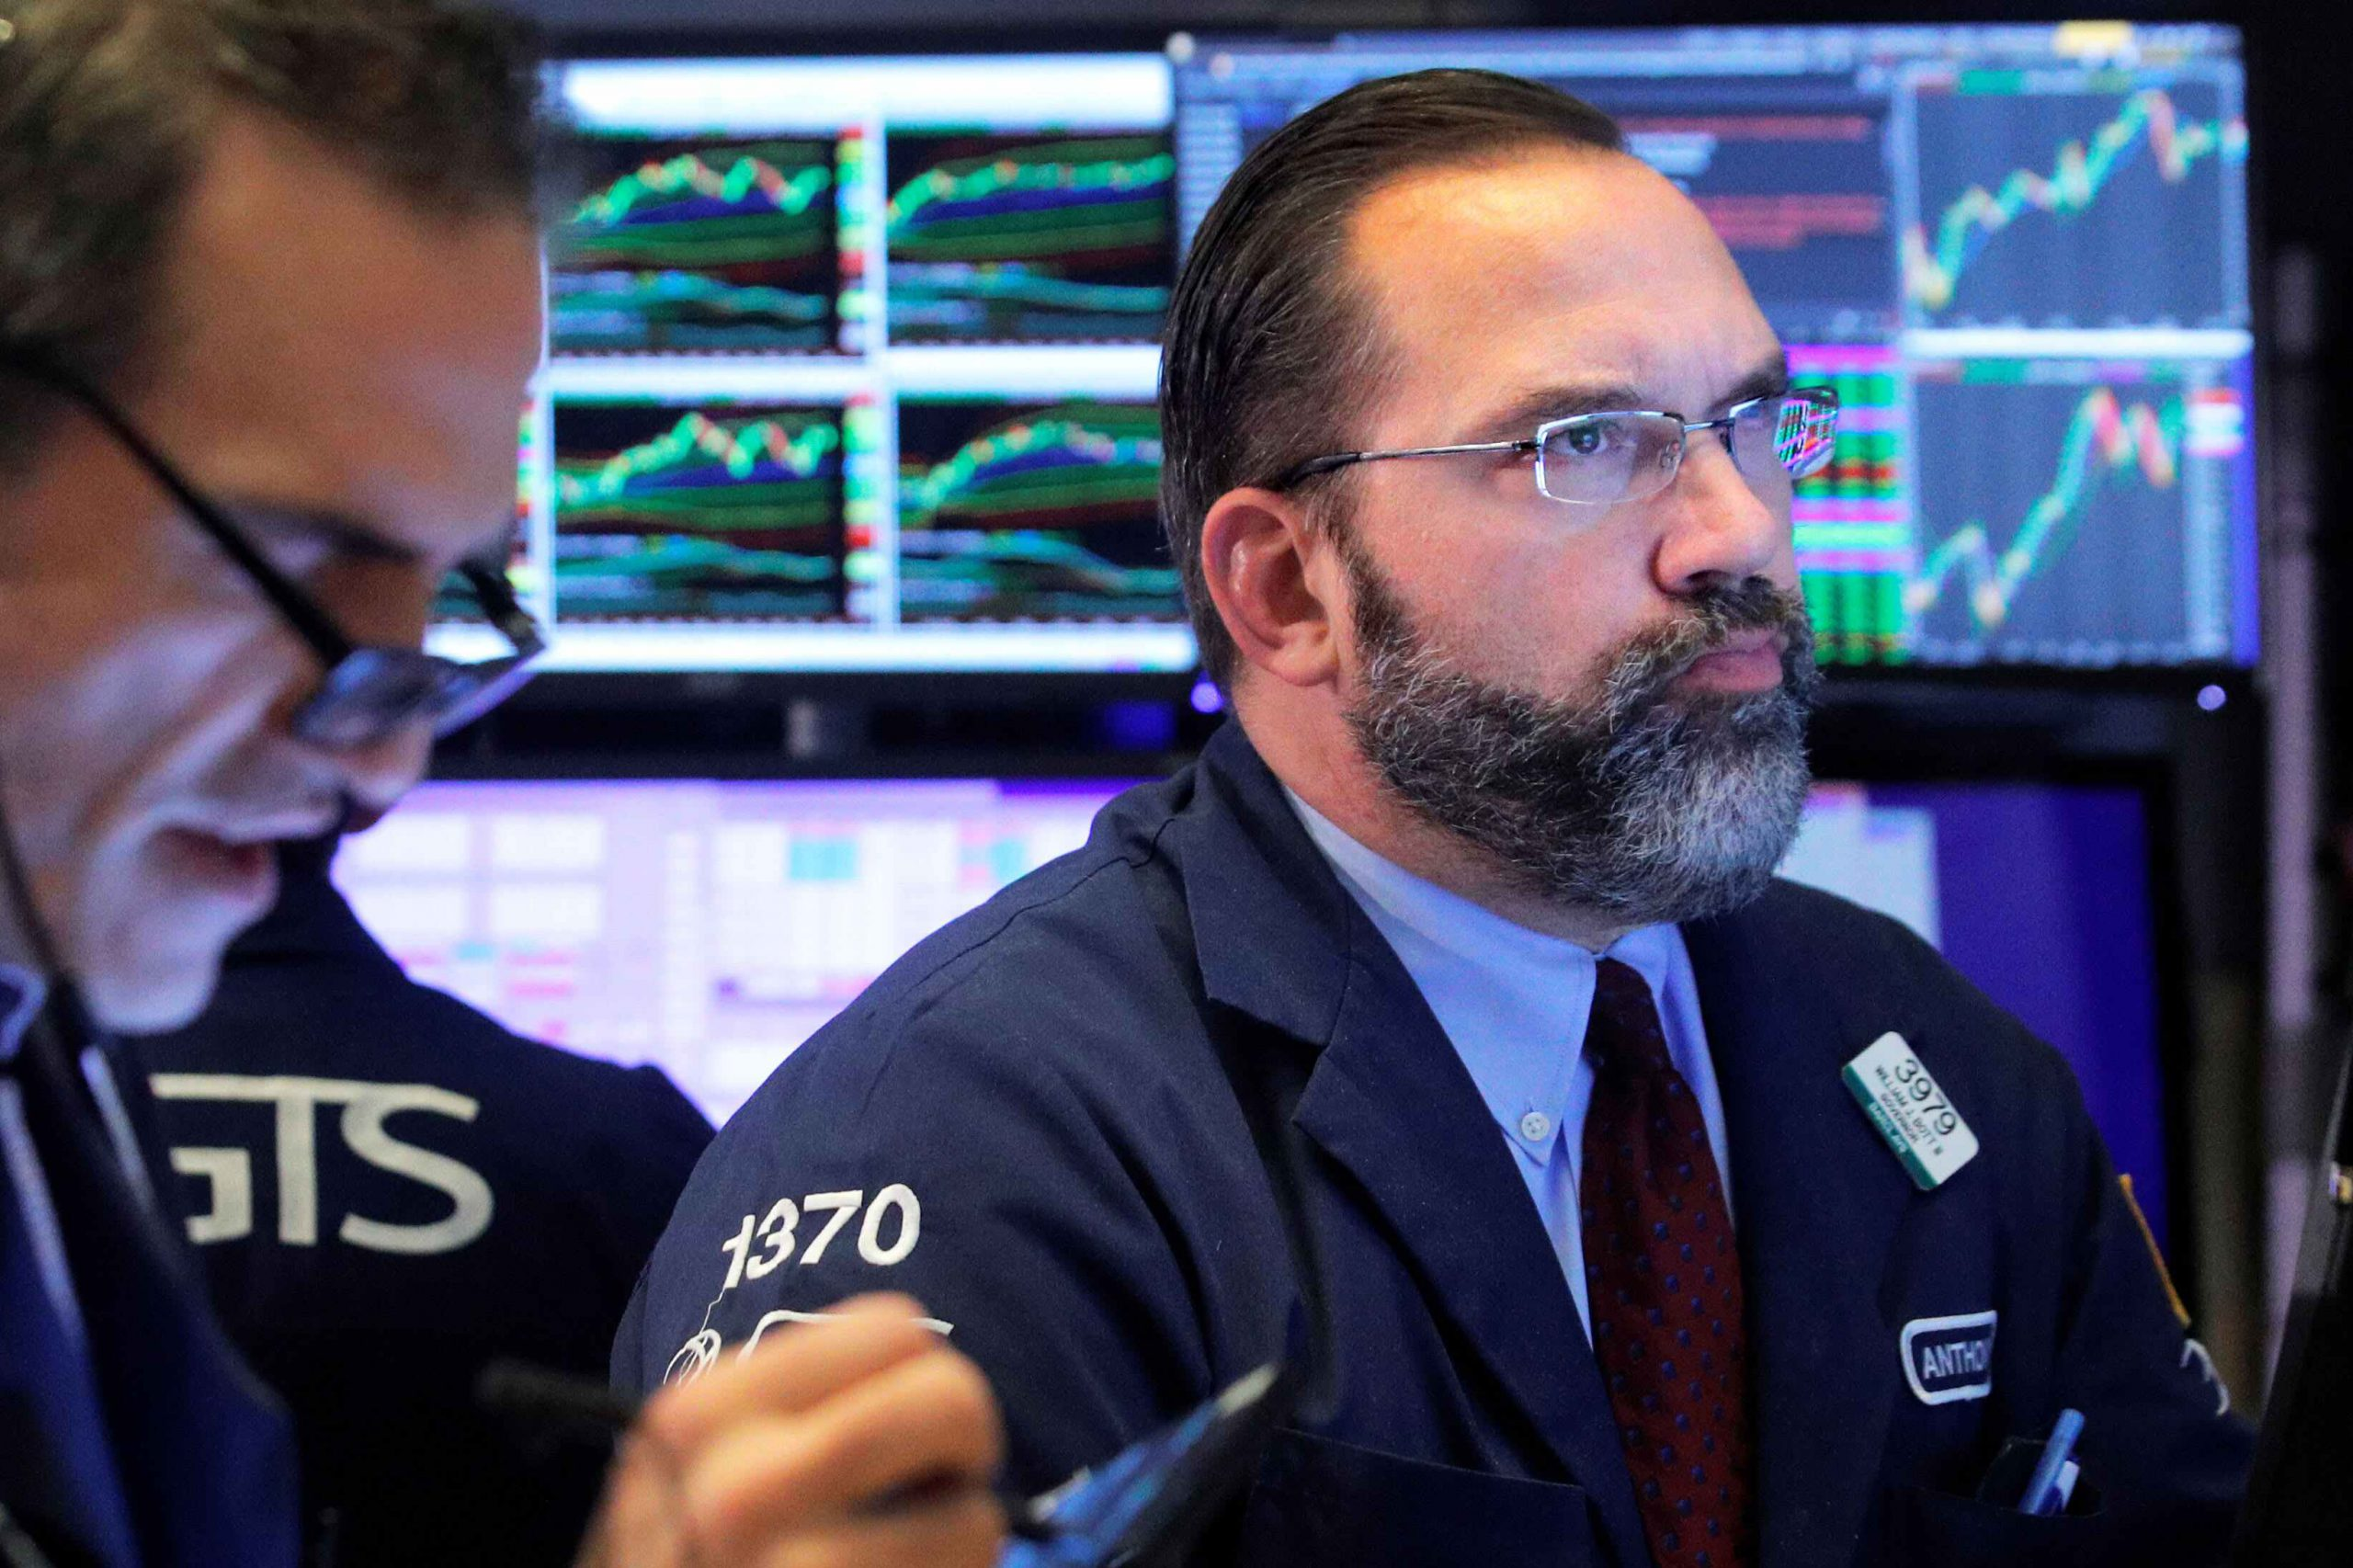 Stocks making the biggest moves in the premarket: PepsiCo, Alibaba, AIG, Kraft Heinz & more